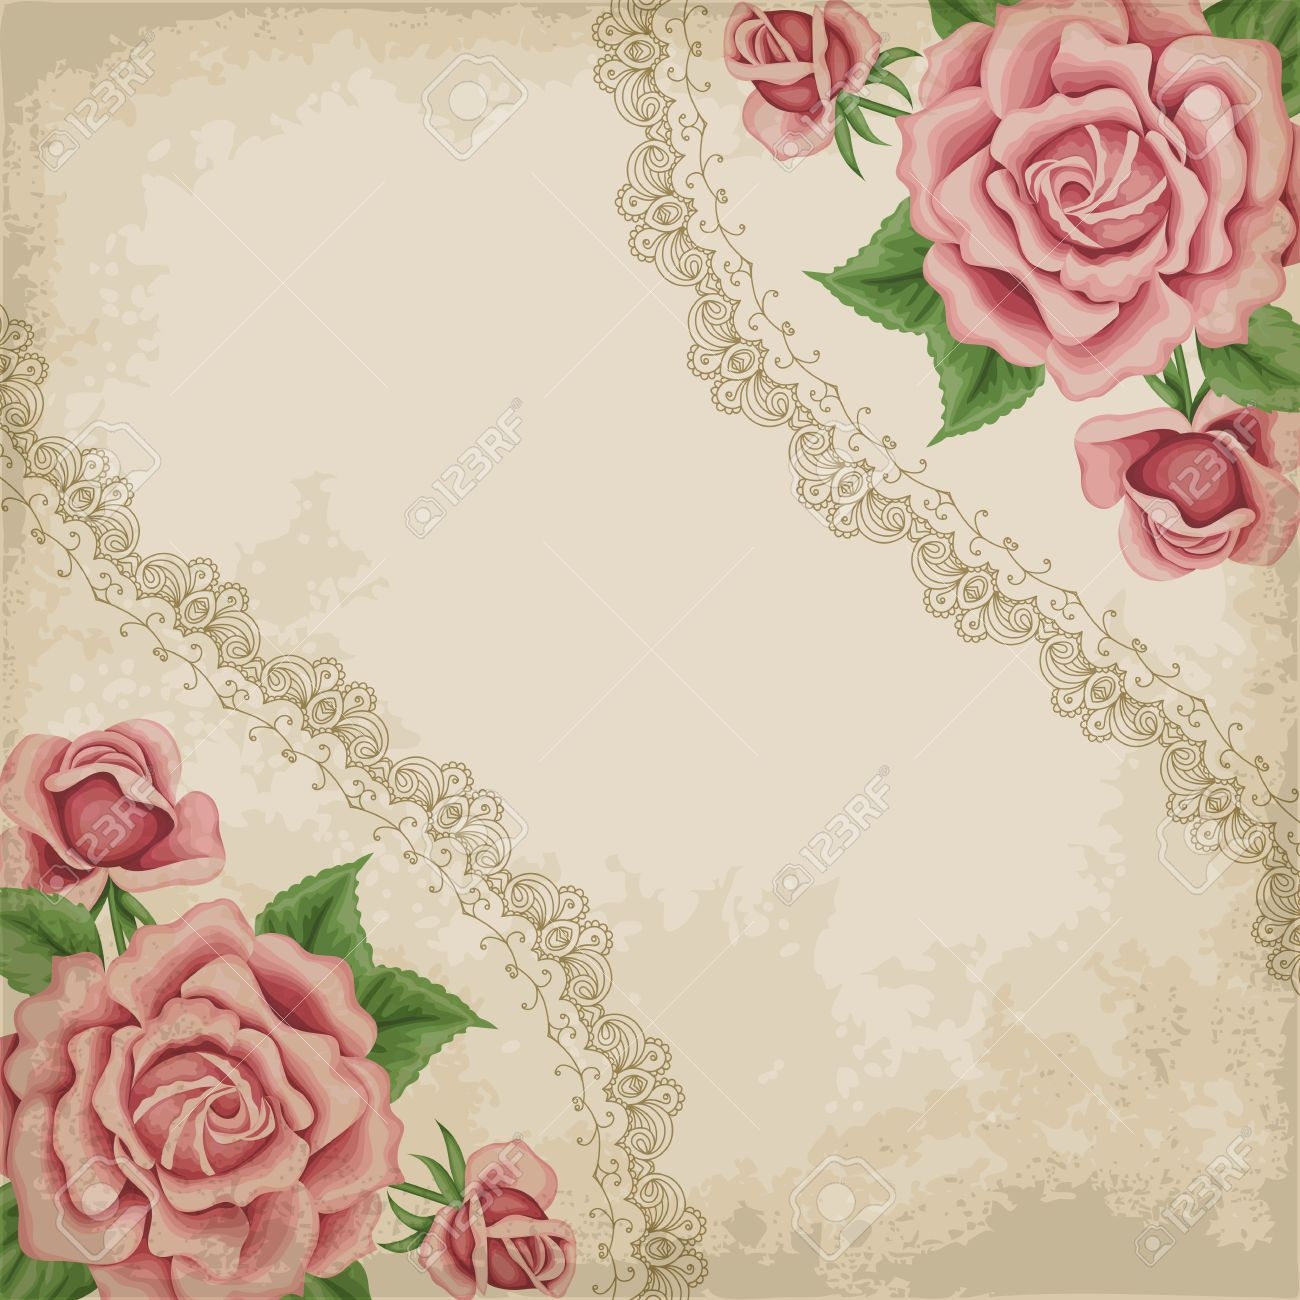 Retro Background With Colorful Roses Lace Border And Old Paper